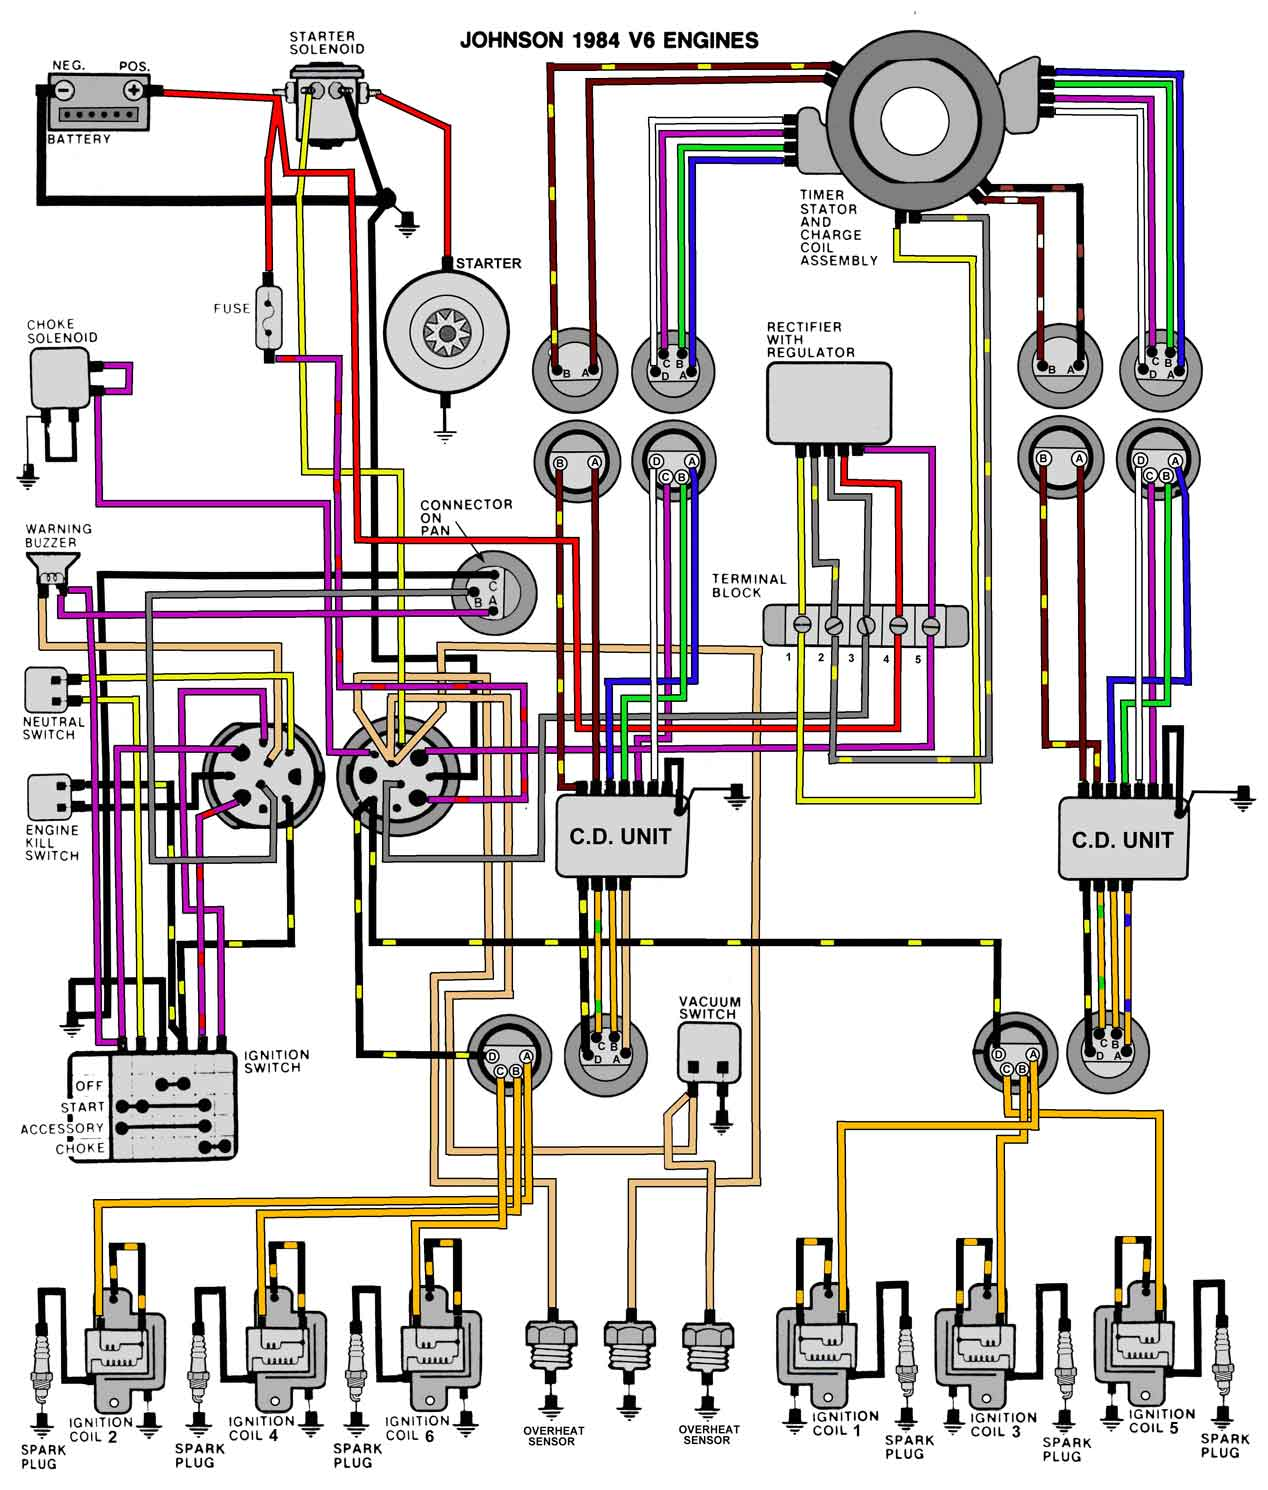 84_V6 mastertech marine evinrude johnson outboard wiring diagrams etec wiring harness at virtualis.co